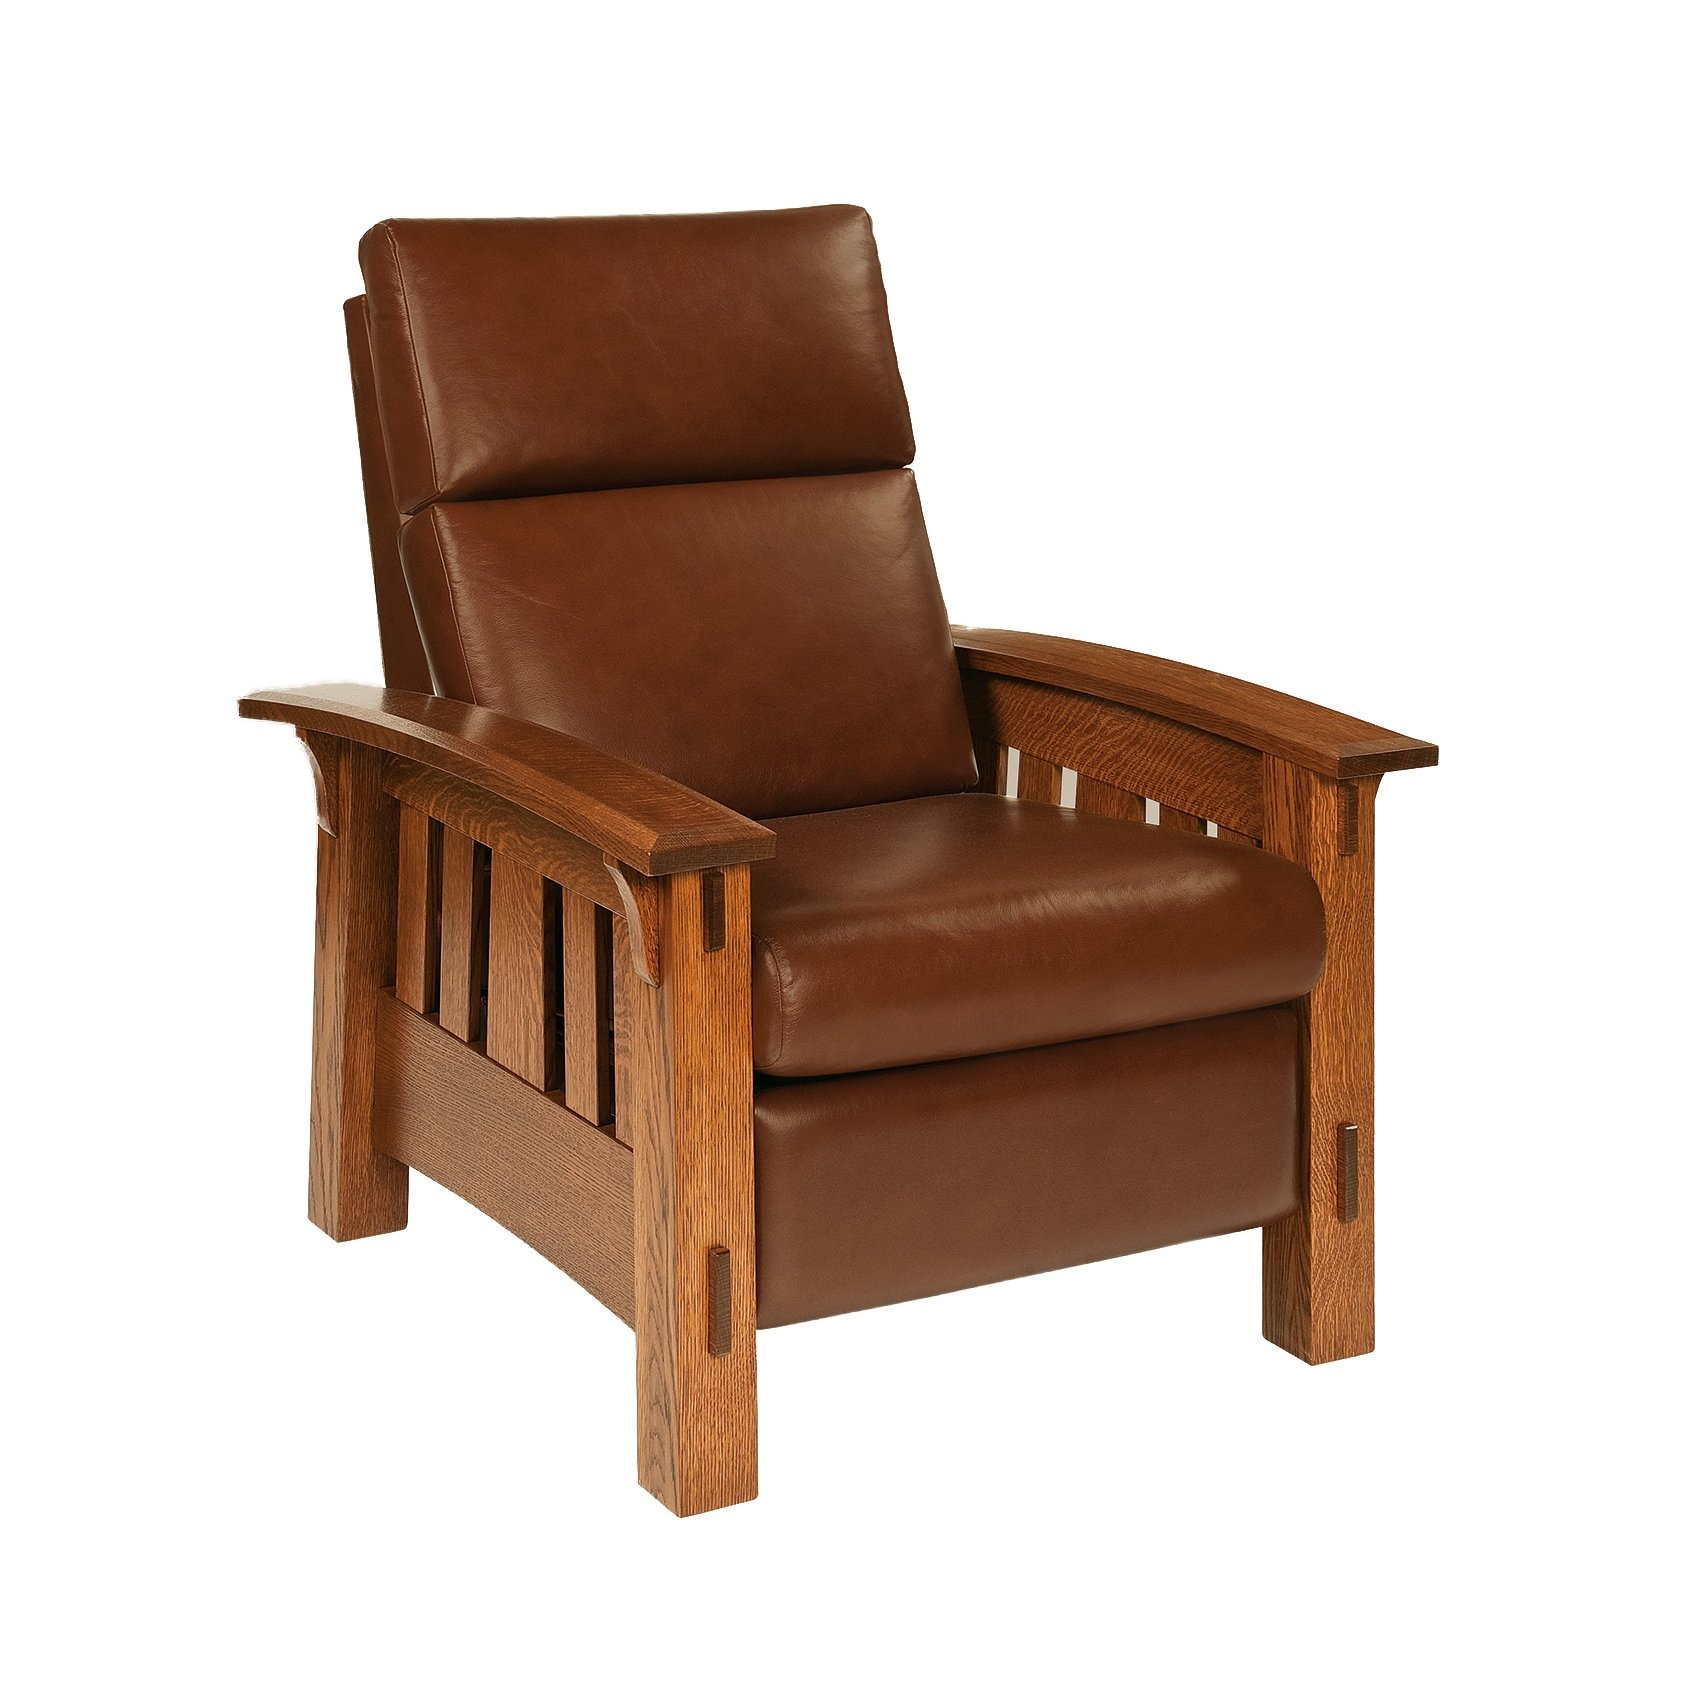 upholstered leather recliner, lounge chair